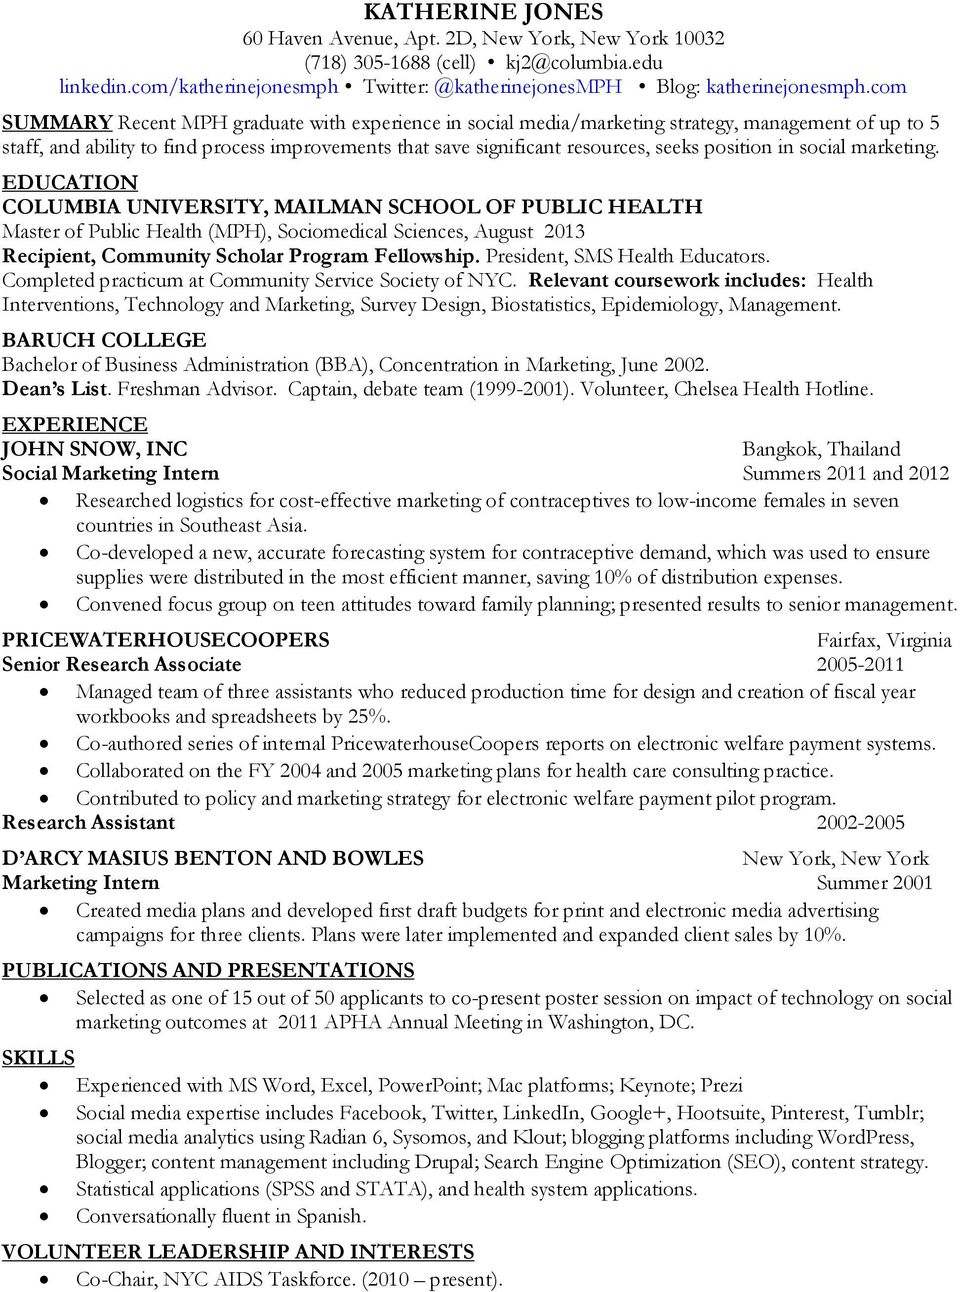 position in social marketing. COLUMBIA UNIVERSITY, MAILMAN SCHOOL OF PUBLIC HEALTH Master of Public Health (MPH), Sociomedical Sciences, August 2013 Recipient, Community Scholar Program Fellowship.